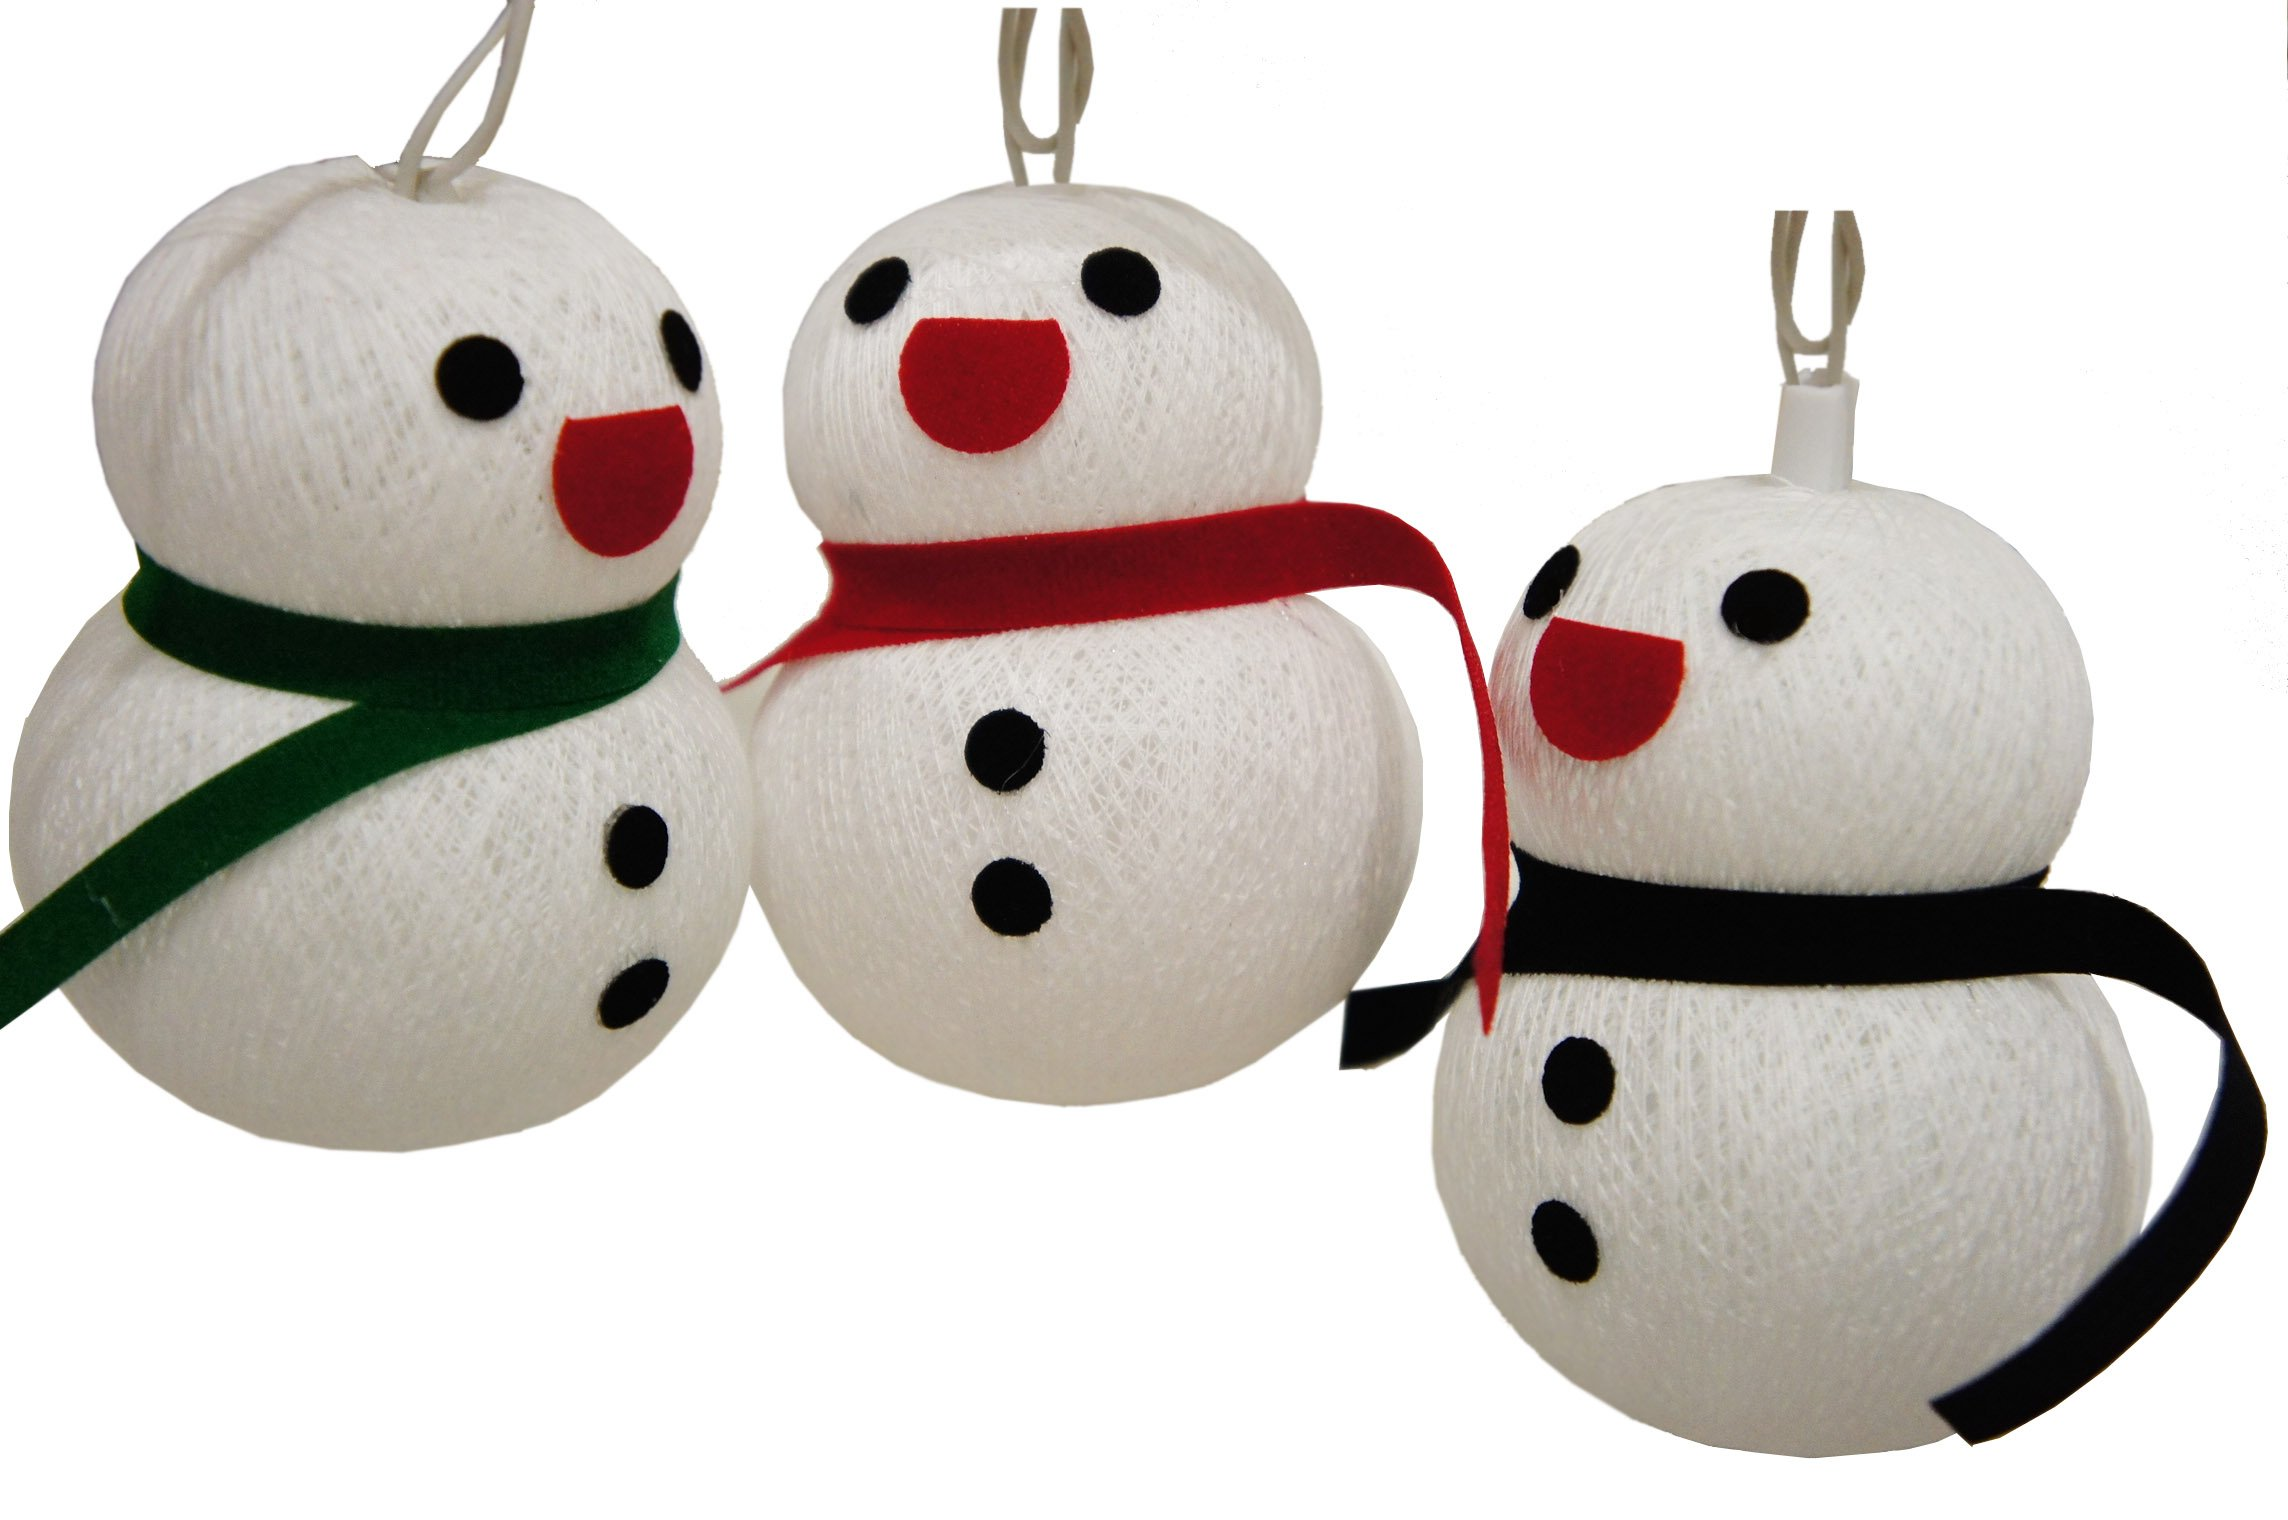 20 Yarn Ball Snowman Collections Party Holiday Birthday New Year Christmas Decoration Decor Patio Kid Bedroom Top Tree Garland Garden Yard Wall Ceilling Ornament Hanging Indoor Outdoor Snowflakes